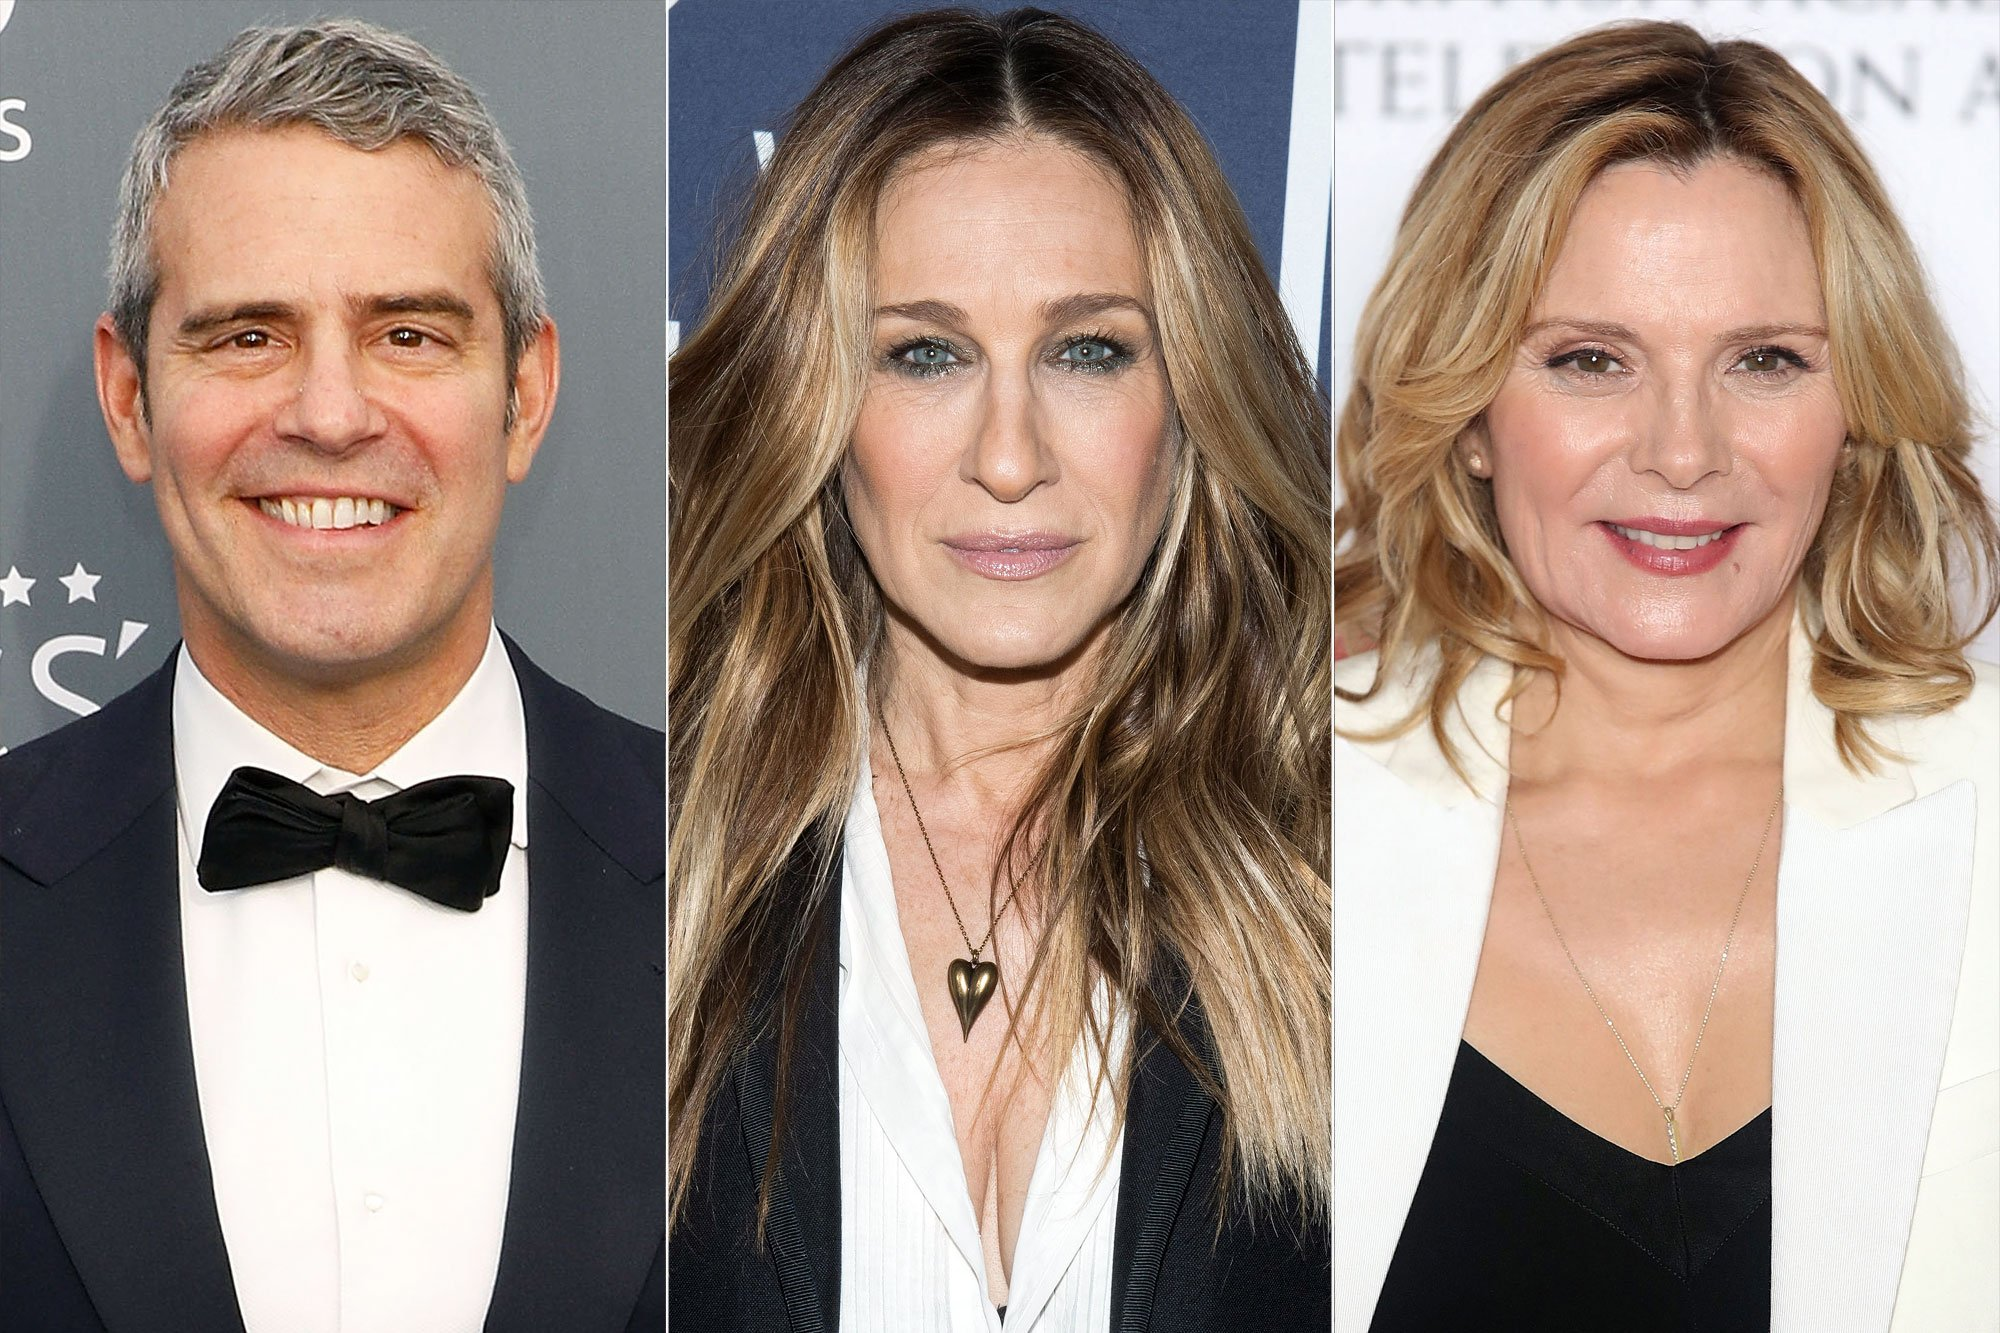 Andy Cohen defends Sarah Jessica Parker amid drama with Kim Cattrall